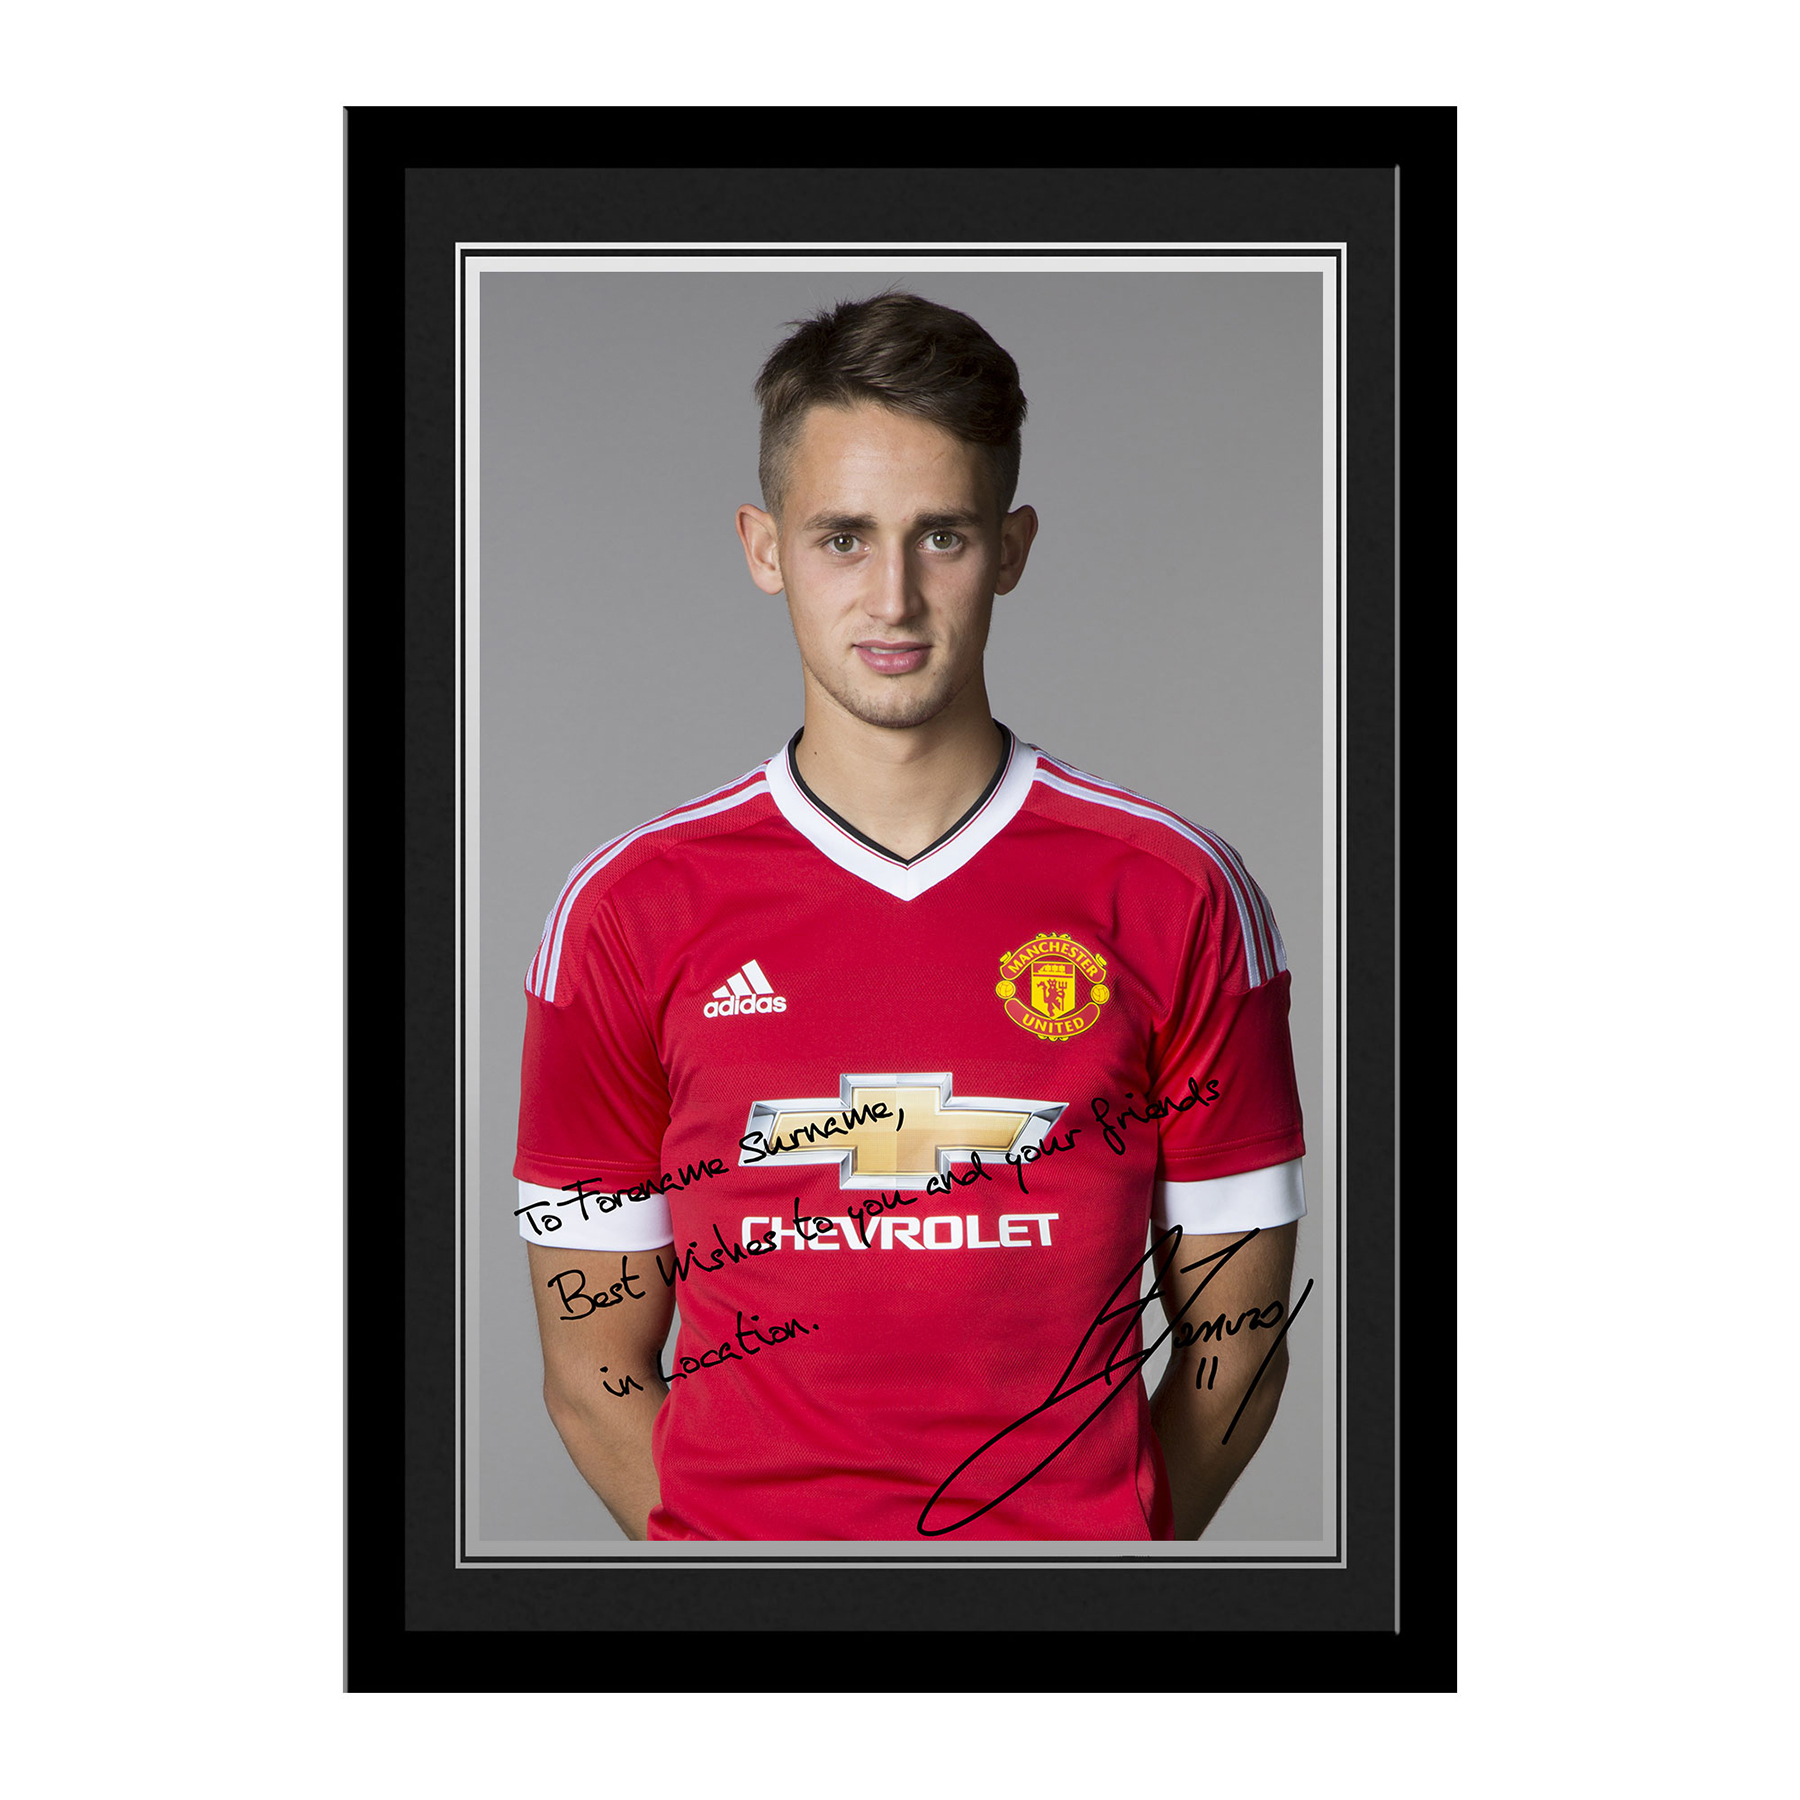 Manchester United Personalised Signature Photo Framed - Januzaj